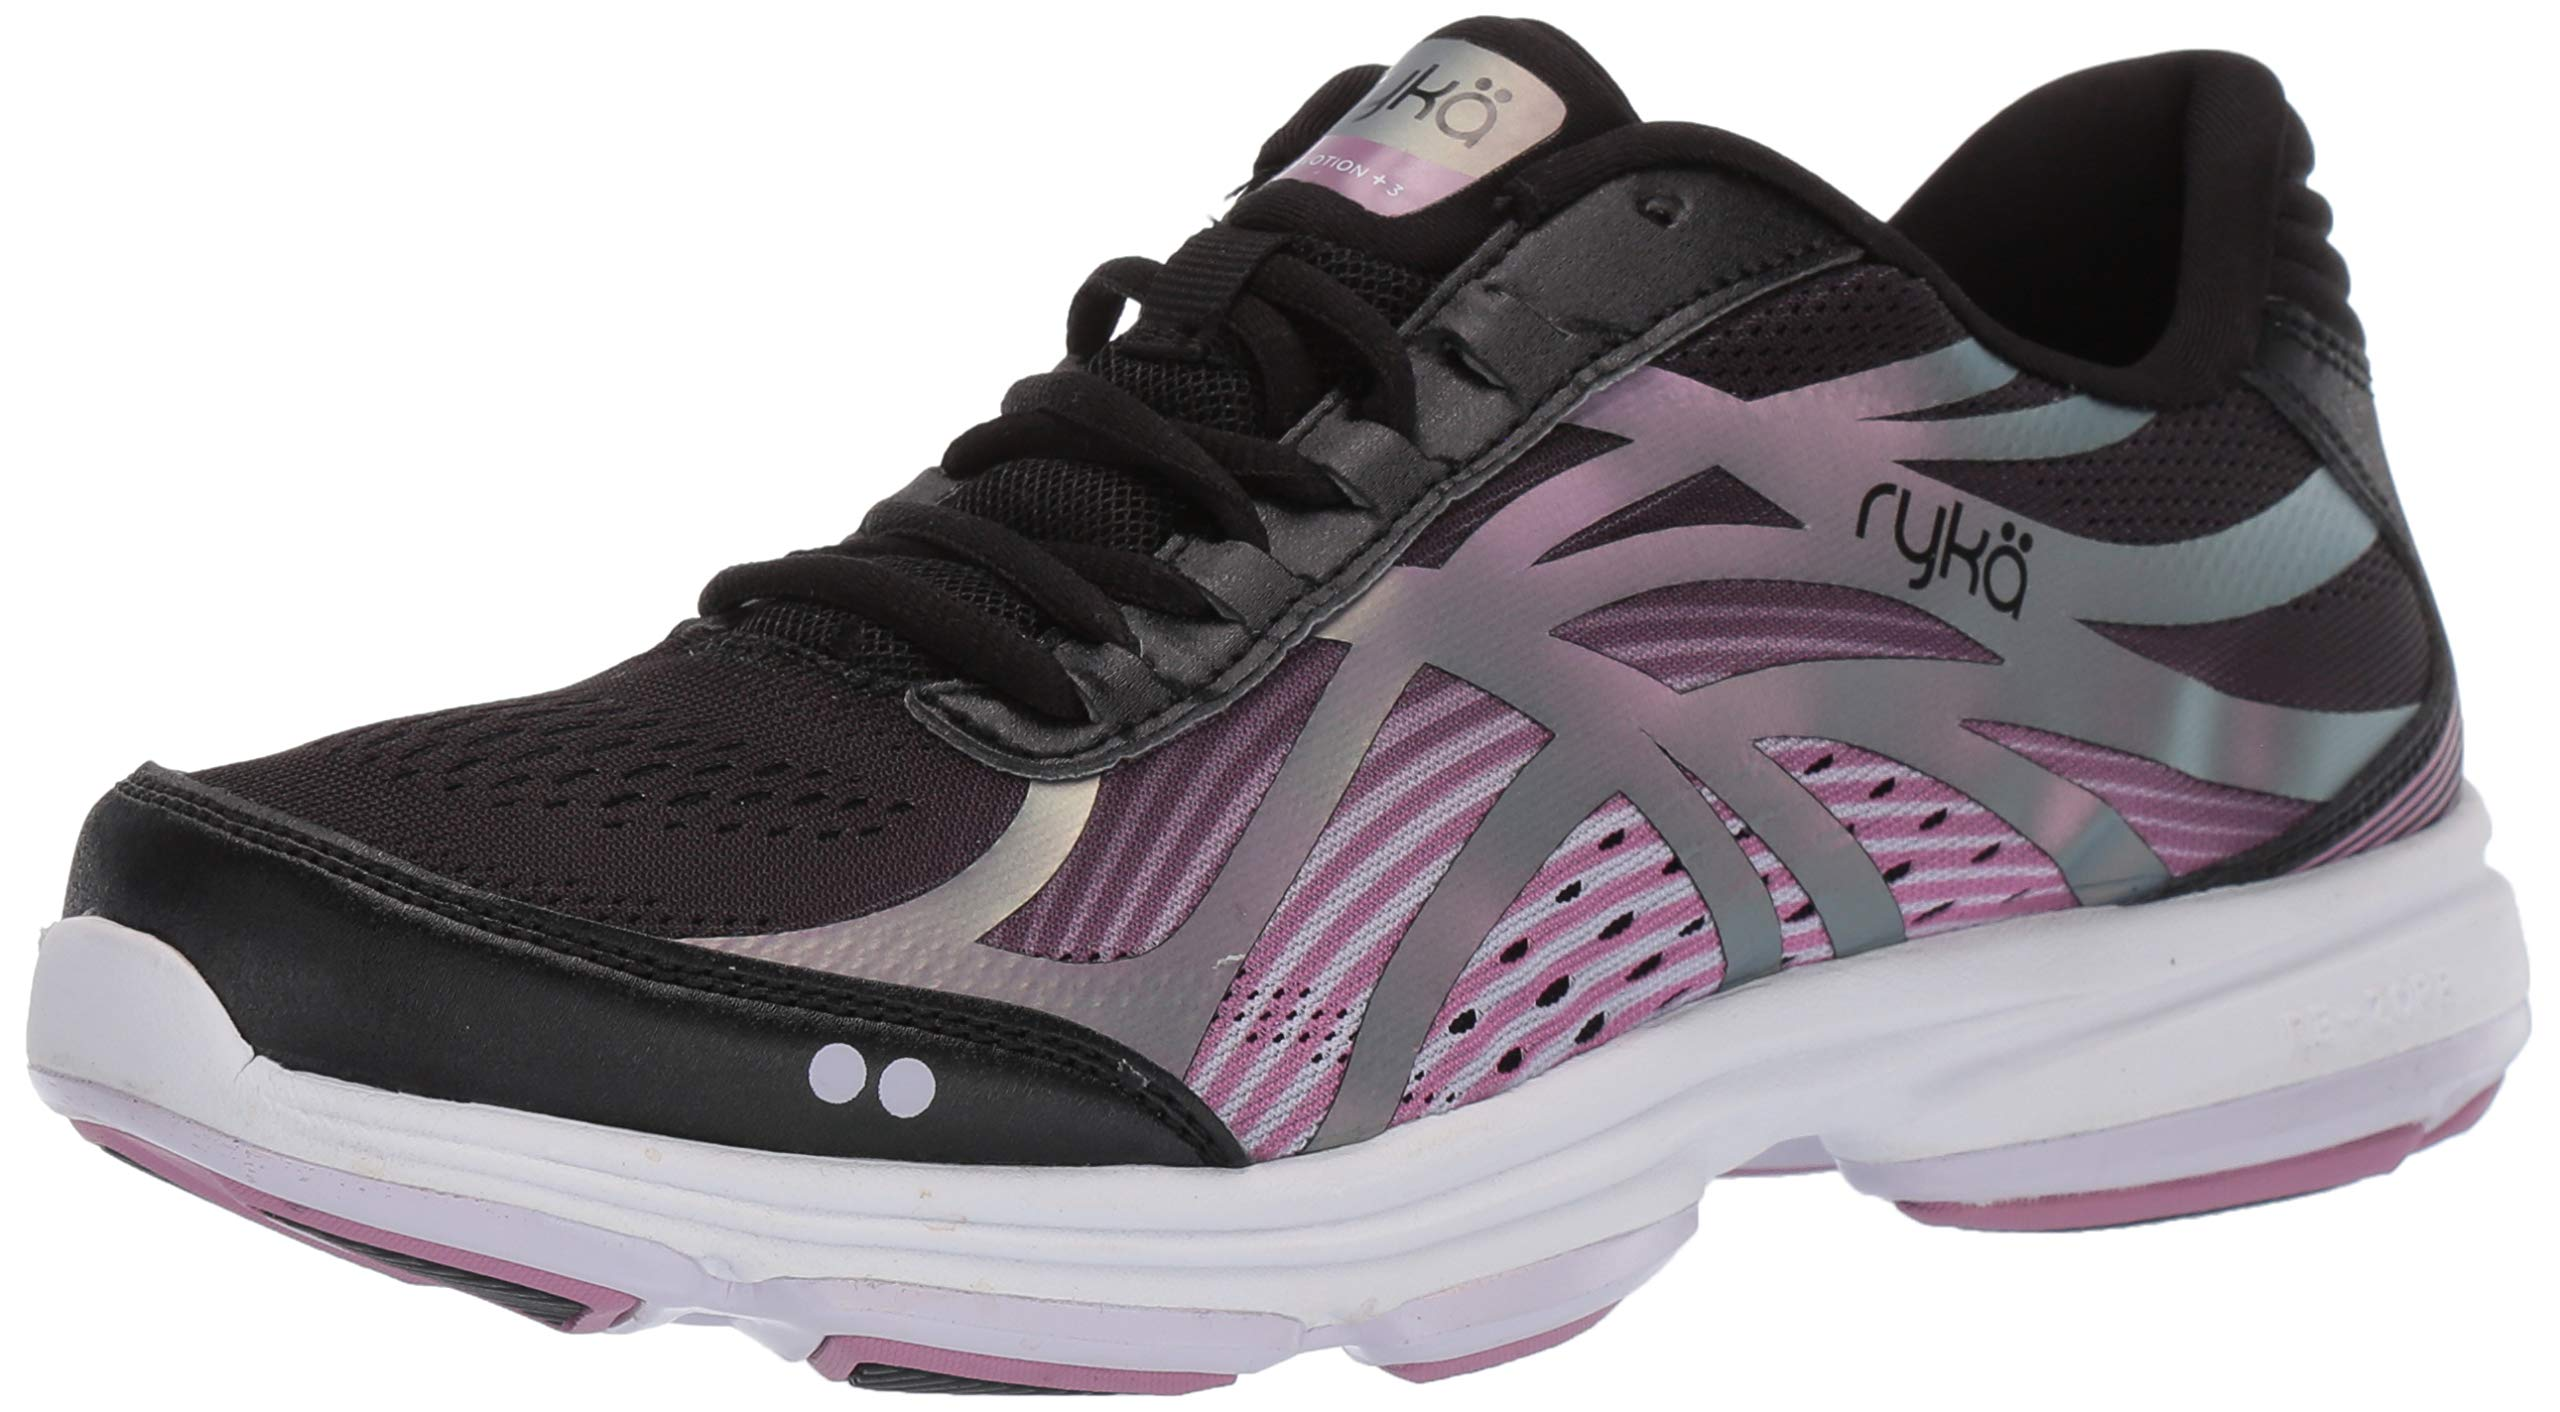 Ryka Women's Devotion Plus 3 Walking Shoe, Black, 11 W US by Ryka